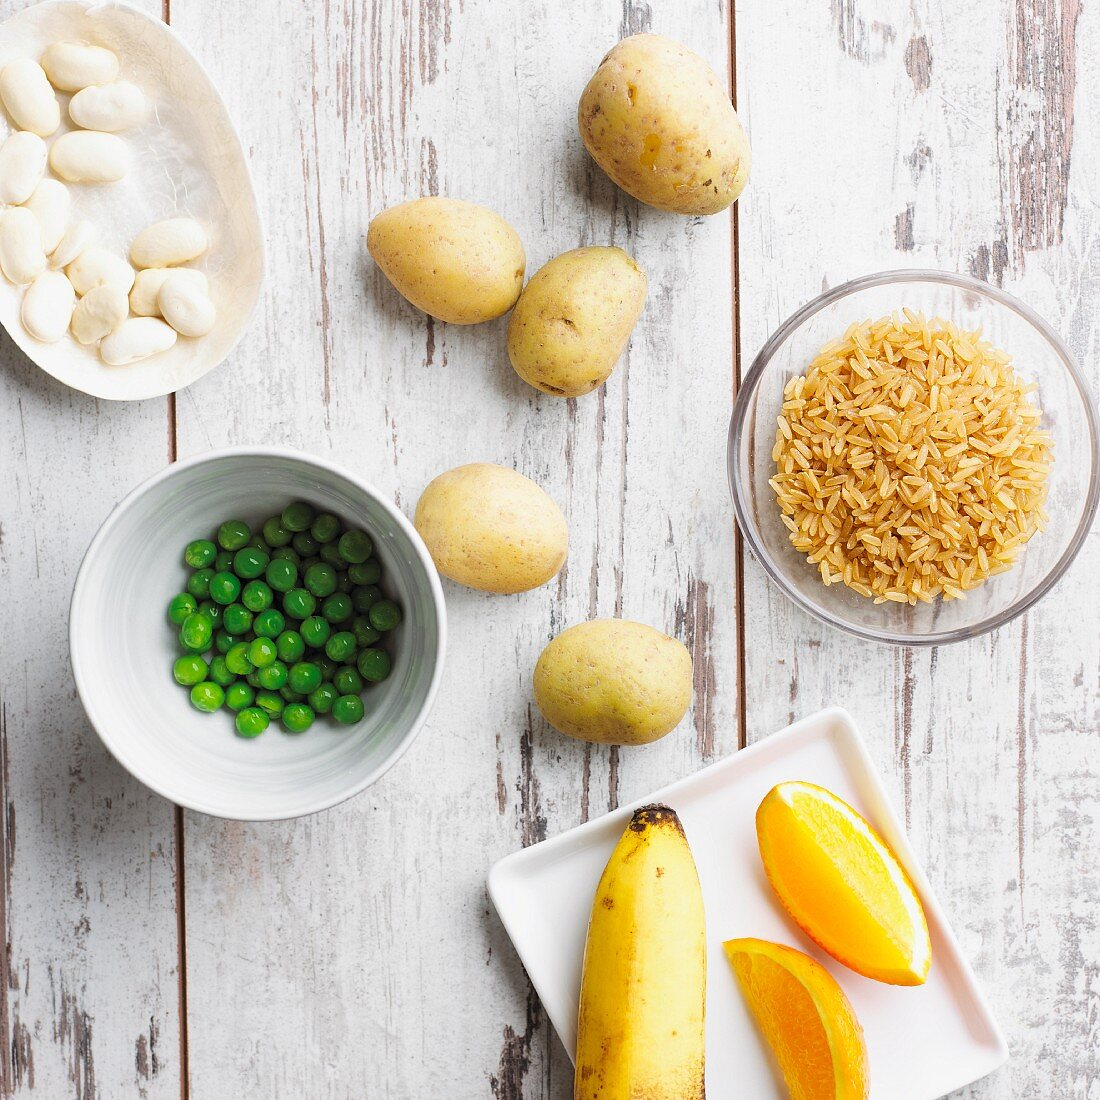 An arrangement of peas, potatoes, rice, beans, banana and orange (good carbohydrates)